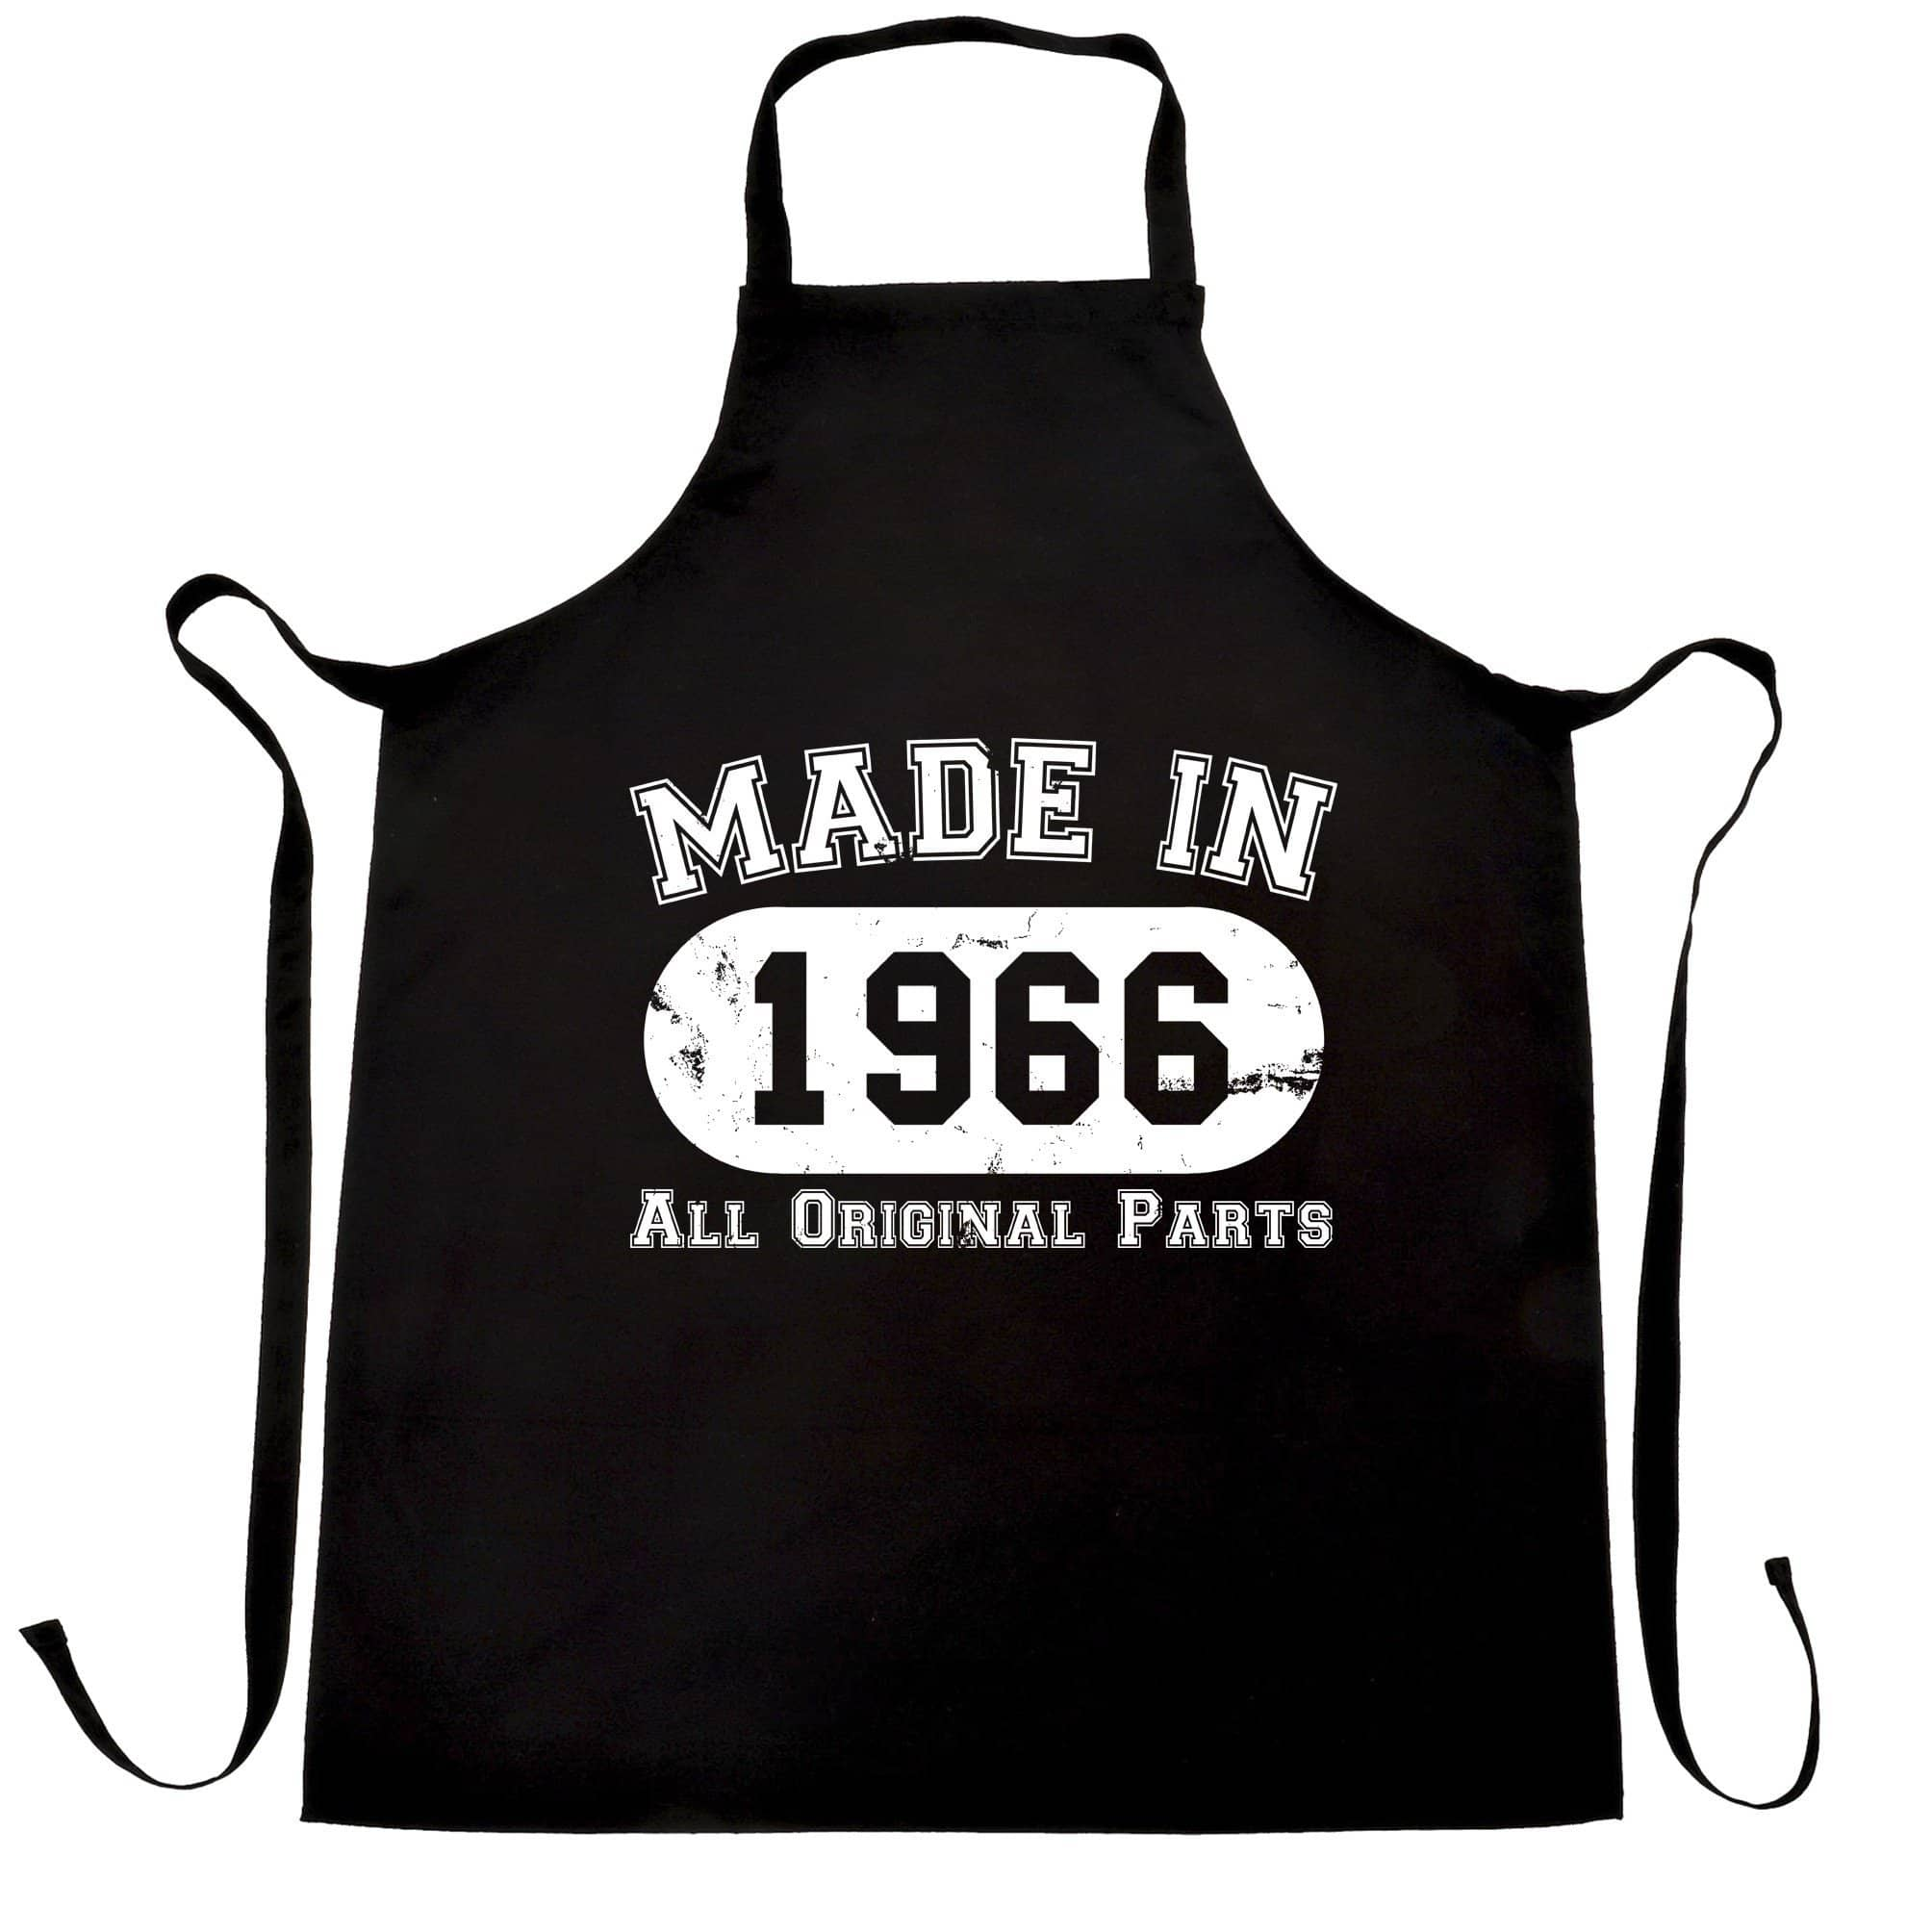 Made in 1966 All Original Parts Apron [Distressed]